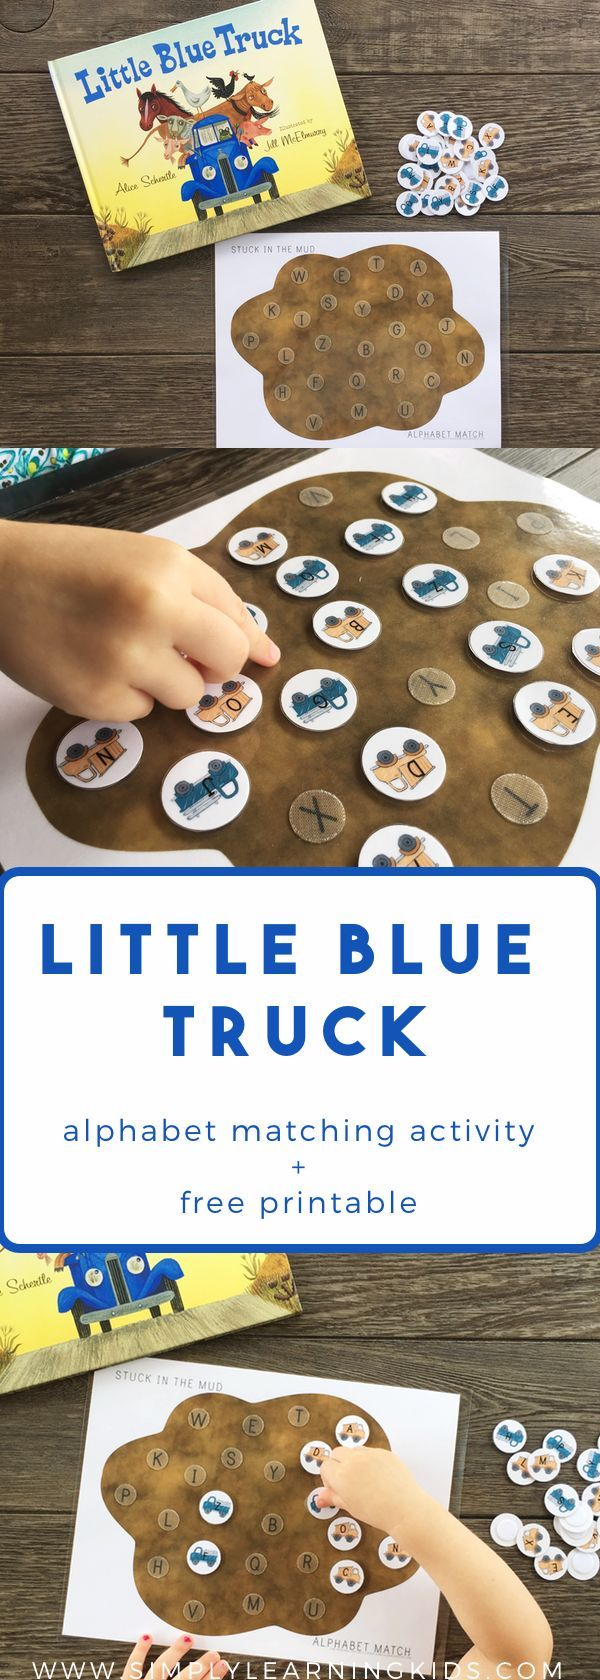 343 best images about Teaching the Alphabet on Pinterest ...